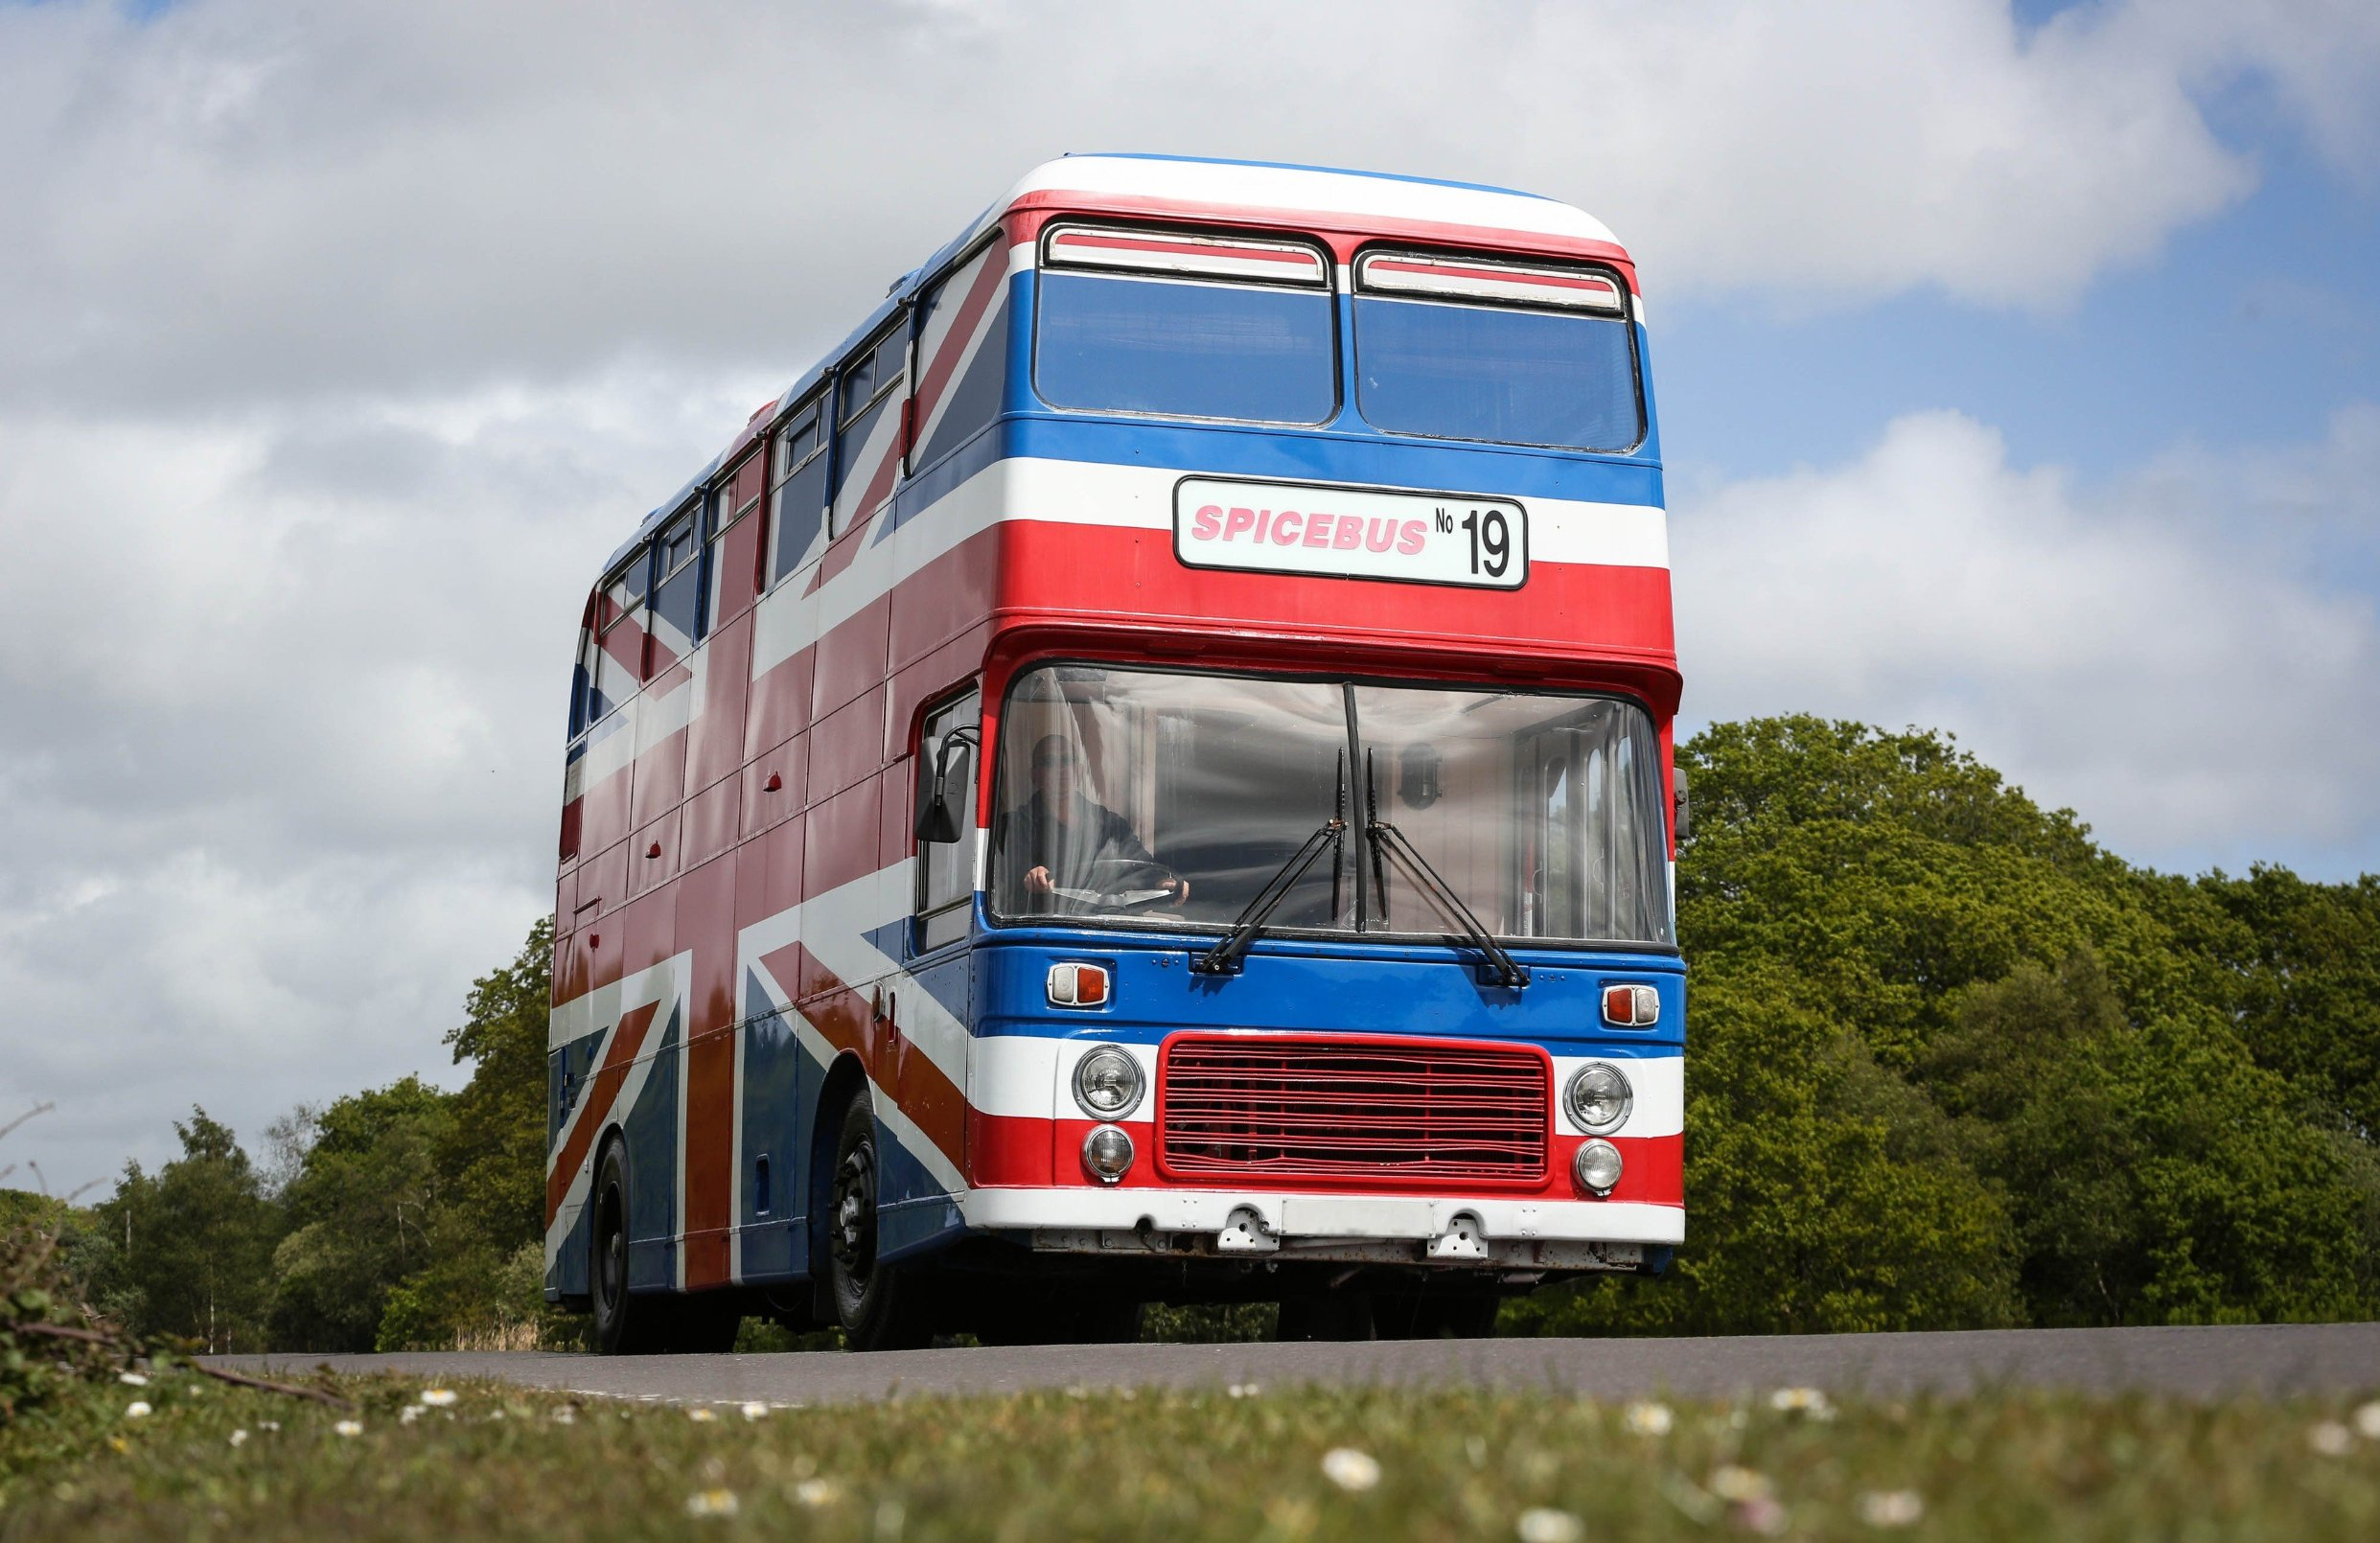 Fancy spicing up your night? Now you can with a stay in the iconic bus from the Spice Girls movie. Host Suzanne Godley teamed up with Airbnb to create this unique and nostalgic stay in time for the Spice Girls reunion tour. The accommodation is made from the original Union Jack bus from the Spice Girls' 1997 movie Spice World, which was then converted into a luxury apartment. The Spice Bus will be situated in the heart of Wembley Park, London, where guests will be able to stay overnight from June 14. The recently renovated living area features pink Union Jack cinema chairs below a Girl Power neon light installation and is fully stocked with vintage 90s magazines and CDs to help recreate the 90s era. With bold interiors, potted plants create a fresh homely feel downstairs while bright colourful scatter cushions surround the central seating area, providing a comfy place for guests to relax and spend time with each other. Upstairs theres a dressing and the adjoining bedroom, which is fitted with a striking animal-print carpet, provides comfy bedding for three guests who get to call the Spice Bus home for the night. Suzanne, who is a Spice Girls superfan, said: When my boss mentioned that he was considering buying the Spice Bus I was desperate to be a part of its renovation. Weve worked hard over the past few months to turn the bus into a home, in keeping with its legacy, and Im so excited to open it up to the public with the support of Airbnb. Being part of this project has been like a dream come true and I cant wait to meet other Spice Girls fans through this experience.. 15 May 2019, Image: 433505192, License: Rights-managed, Restrictions: World Rights, Model Release: no, Credit line: Profimedia, Mega Agency